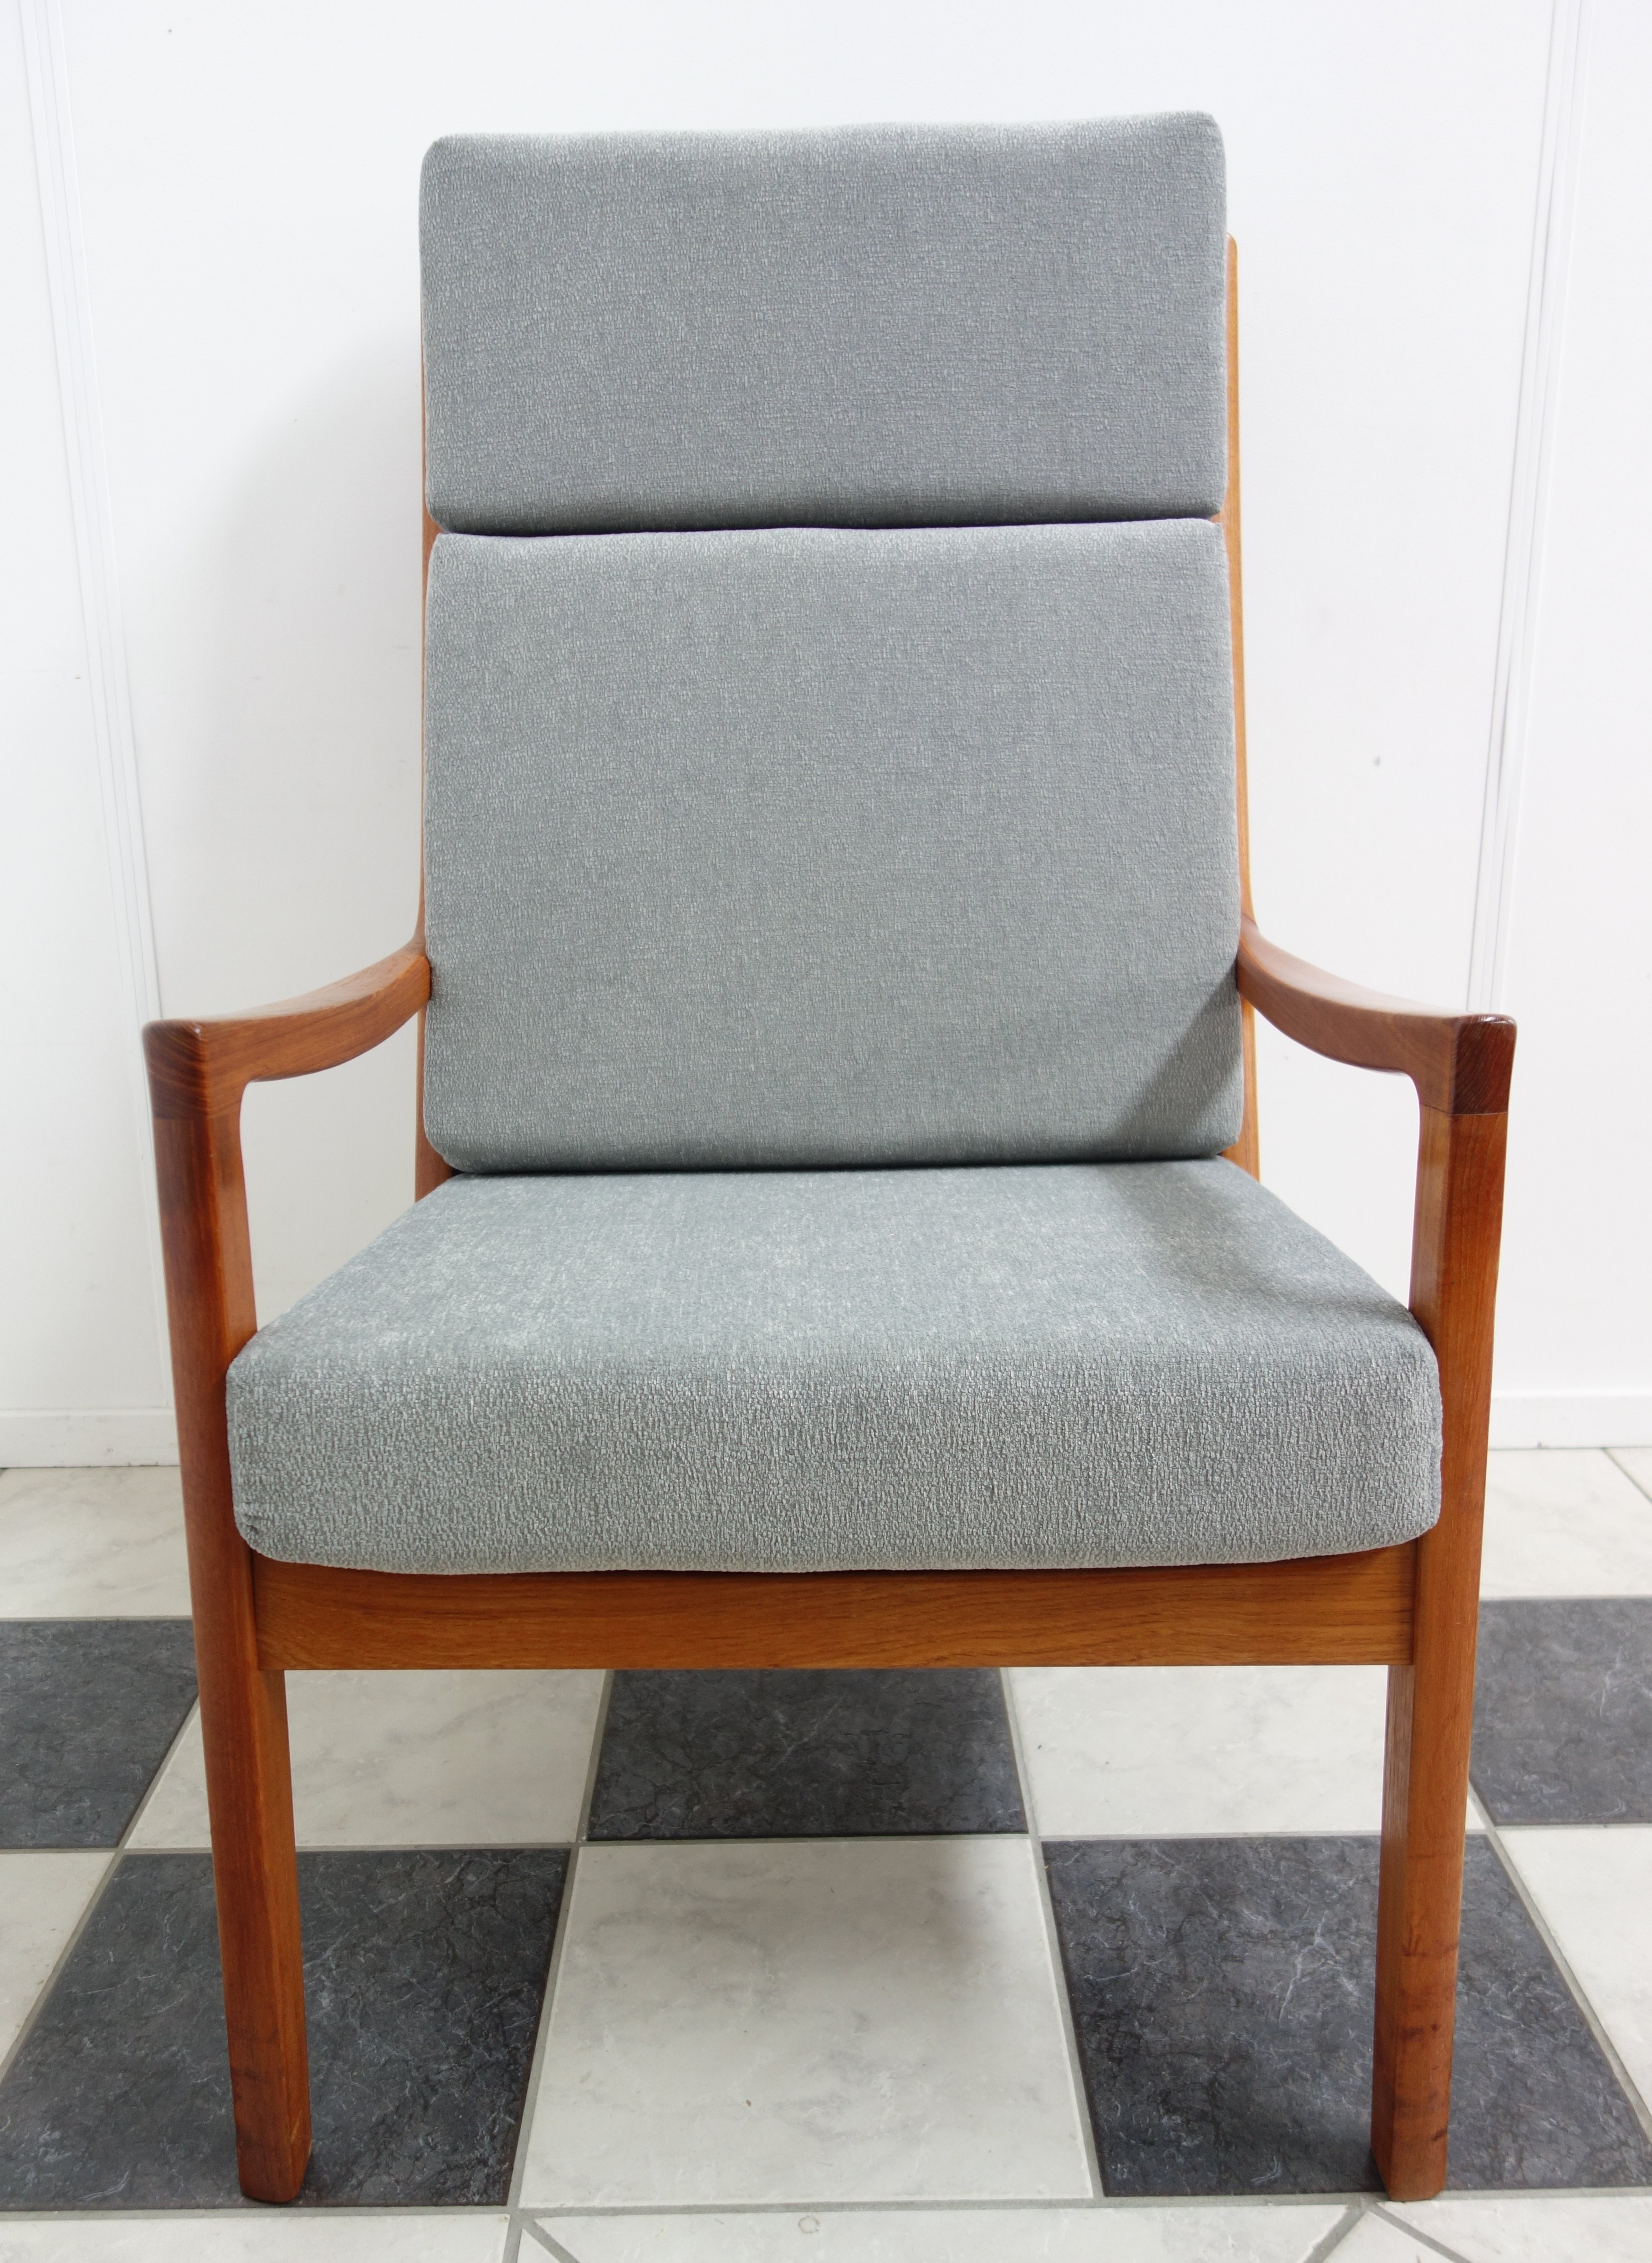 Cool Senator Arm Chair By Ole Wanscher For P Jeppesen Mobelfabrik 1960S Gmtry Best Dining Table And Chair Ideas Images Gmtryco